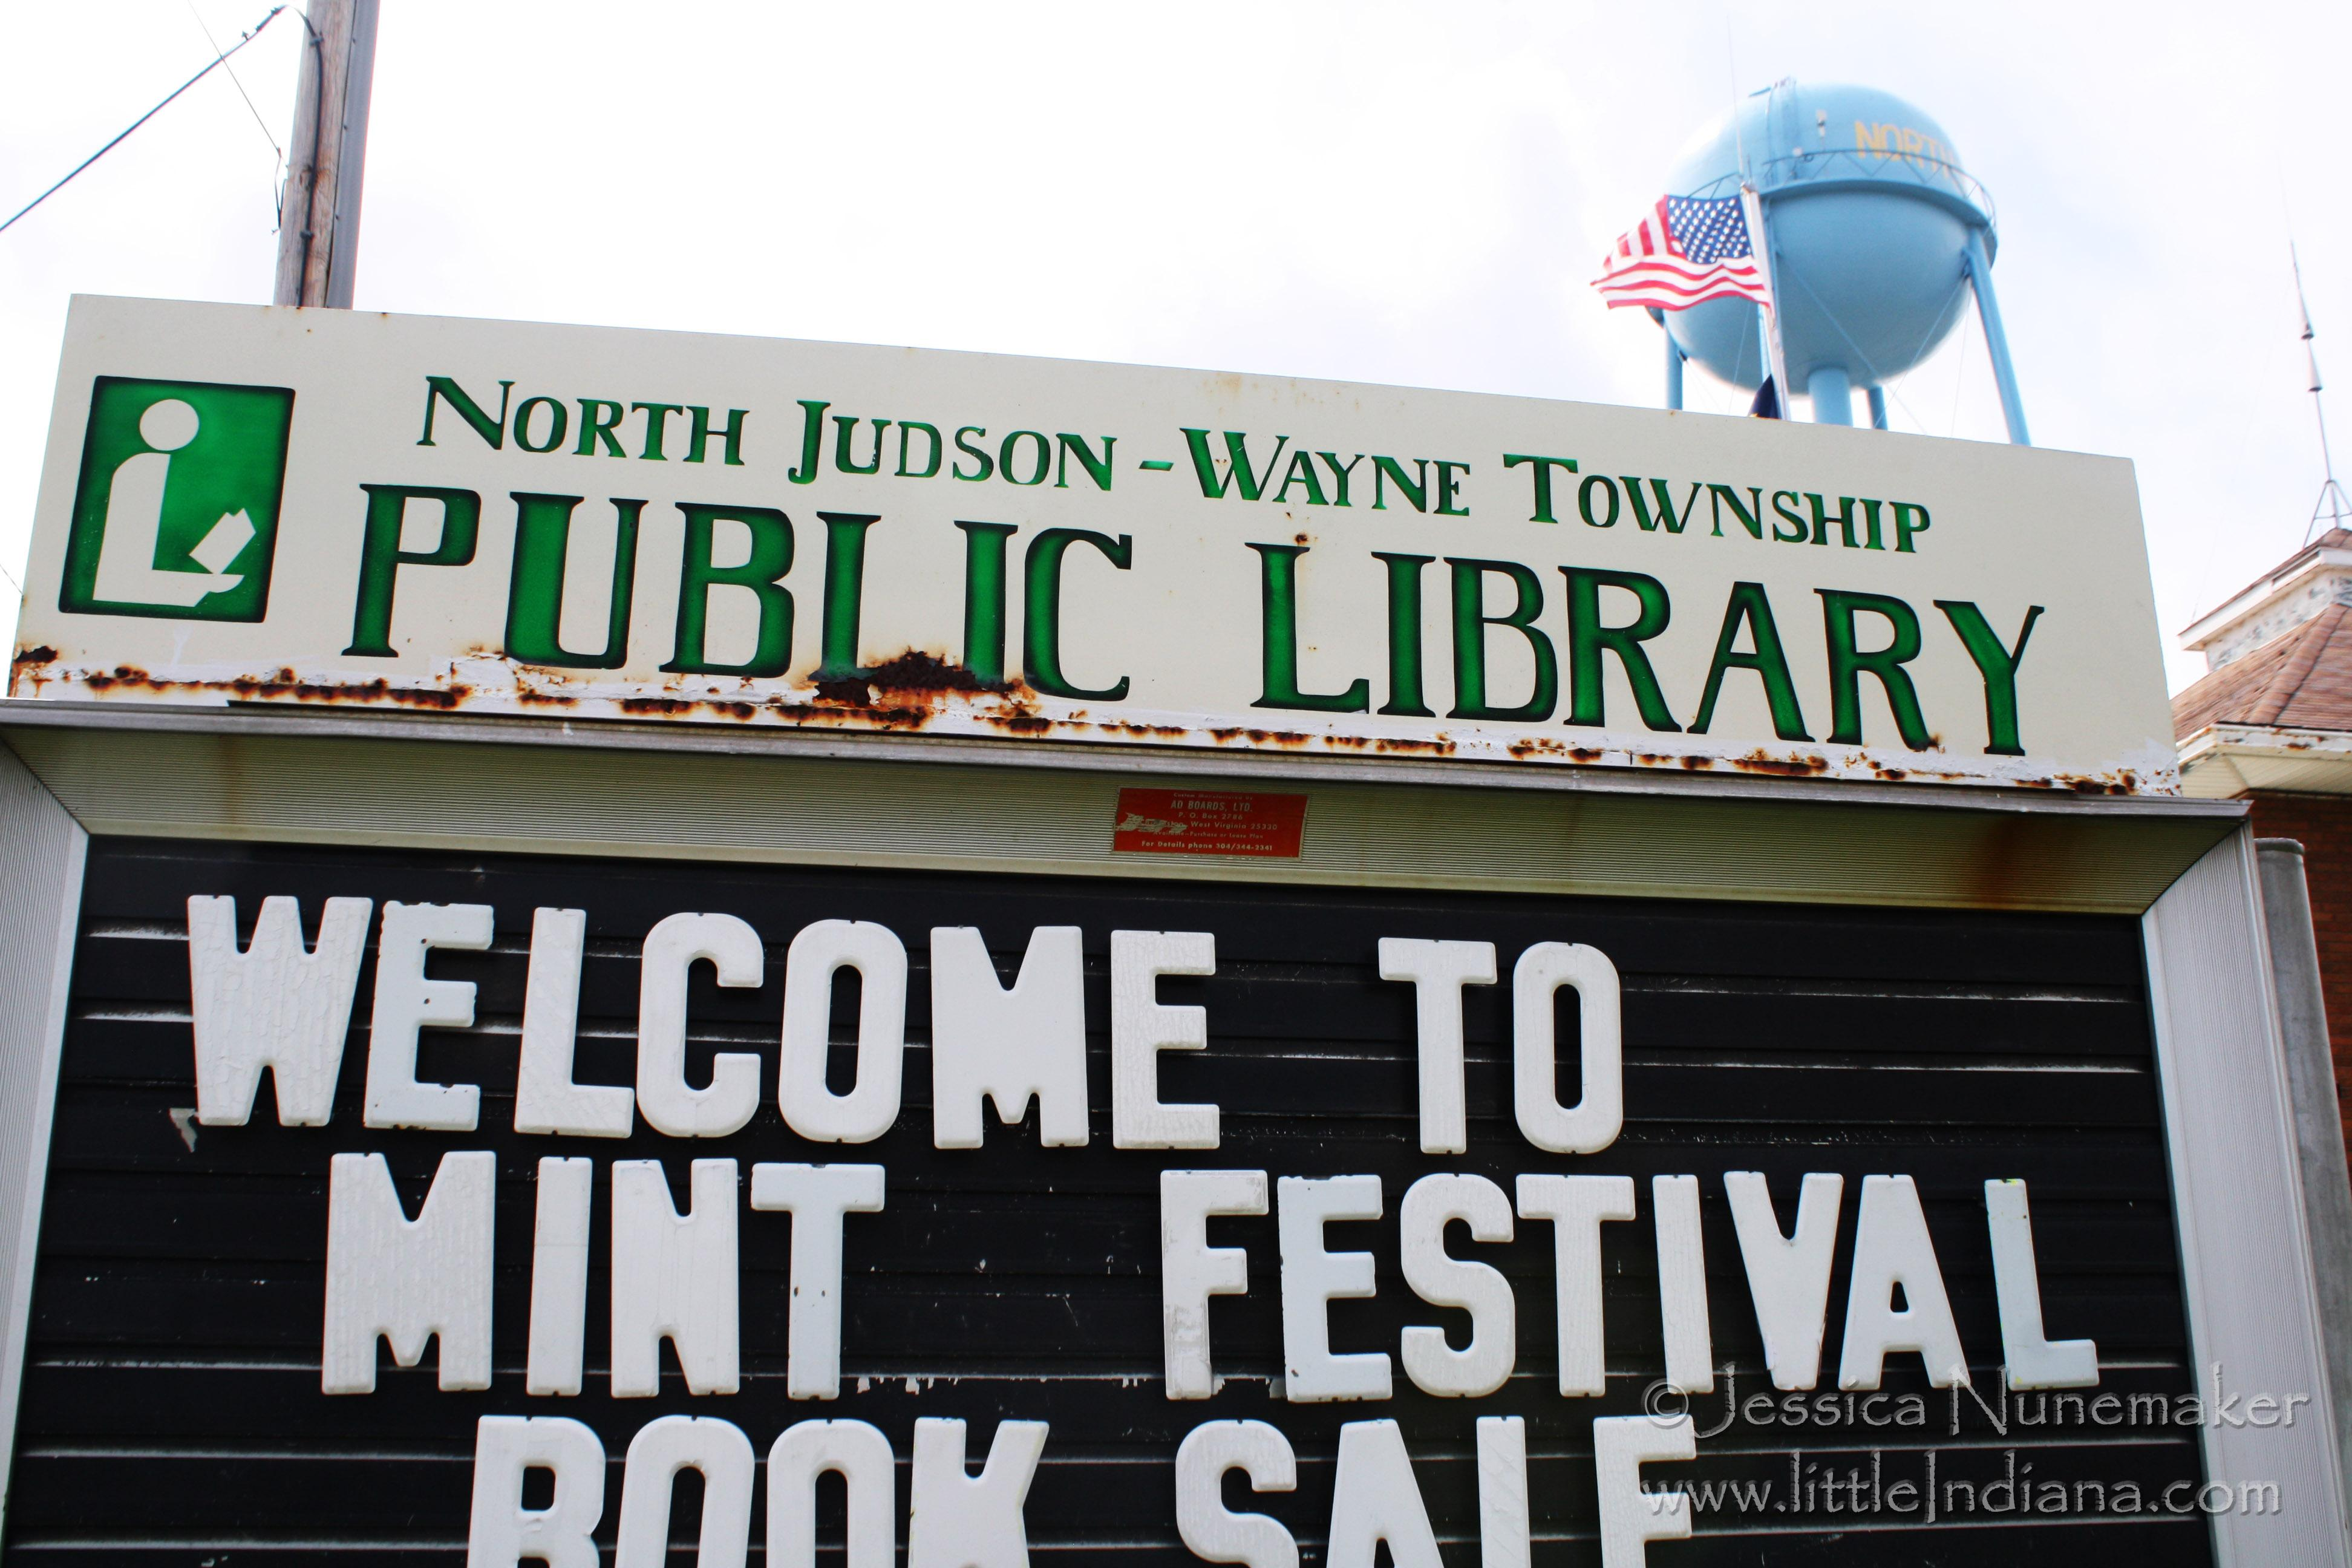 North Judson Mint Festival in North Judson, Indiana